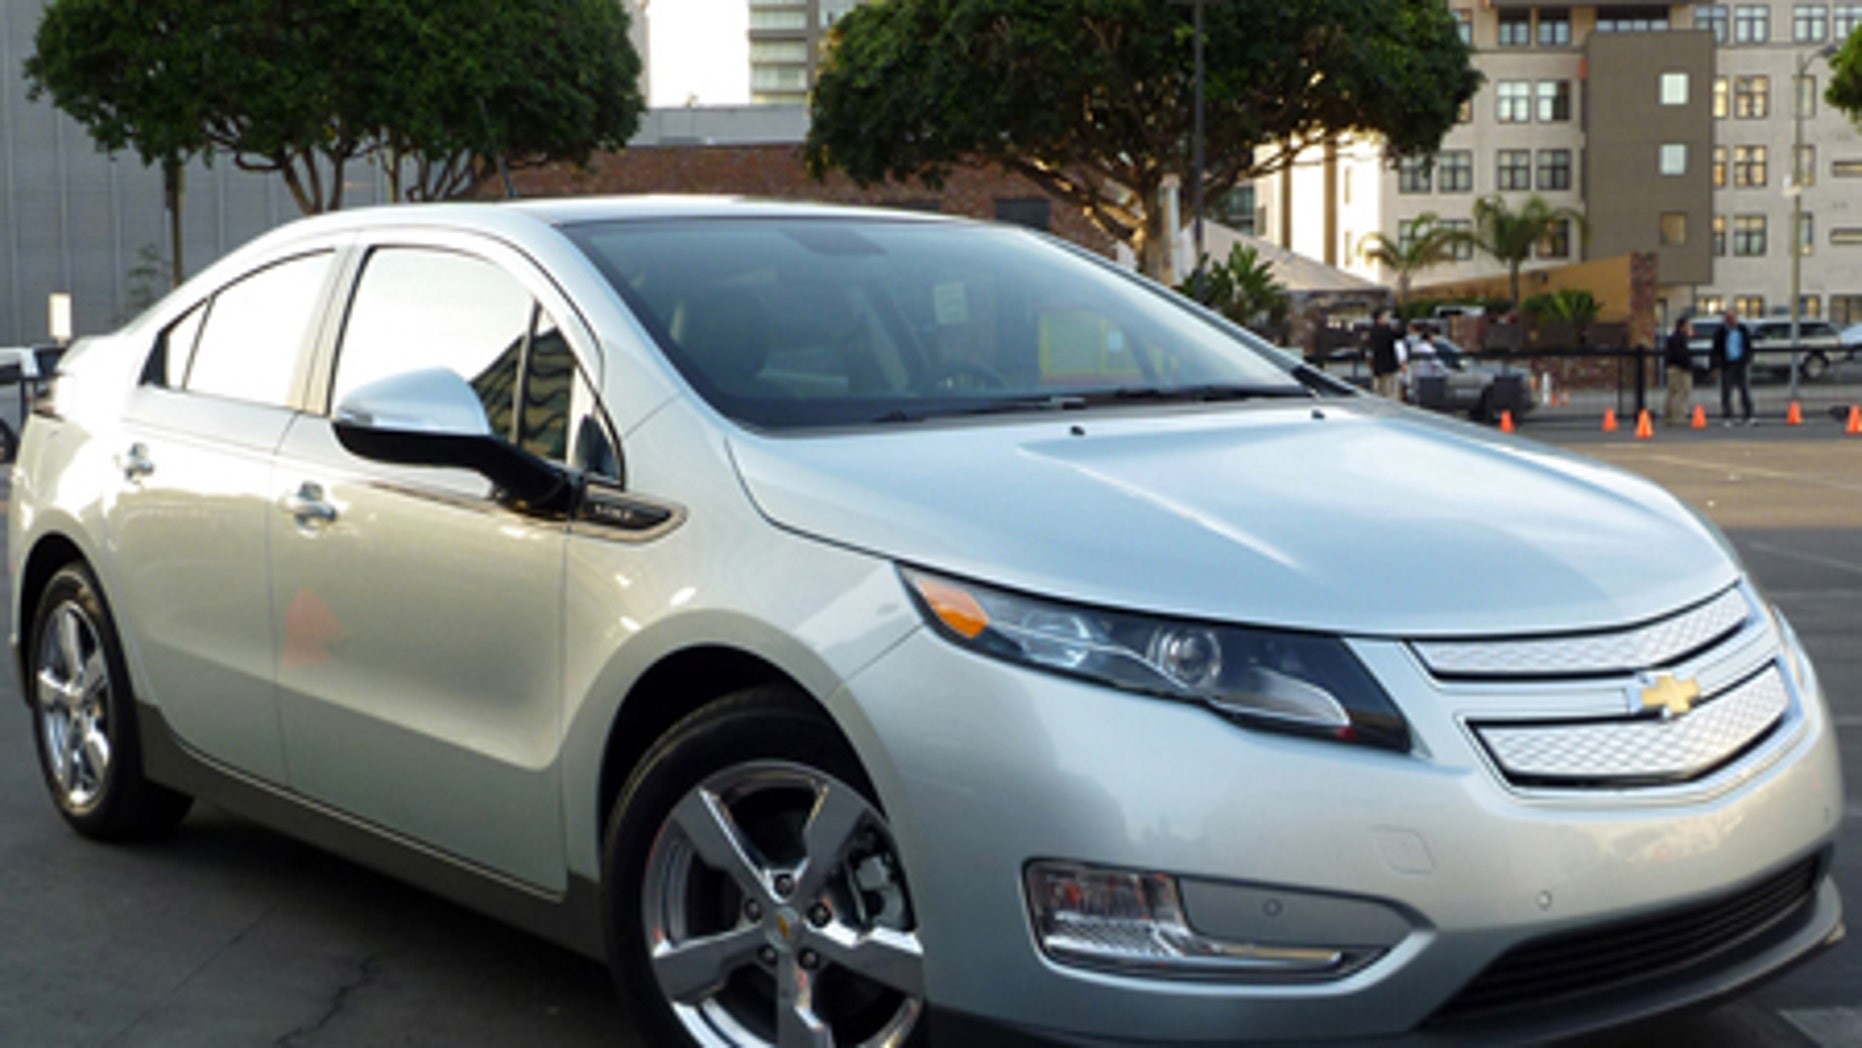 Chevy Volt Lease >> Gm To Sell Chevy Volt For 41g Lease For 350 A Month Fox